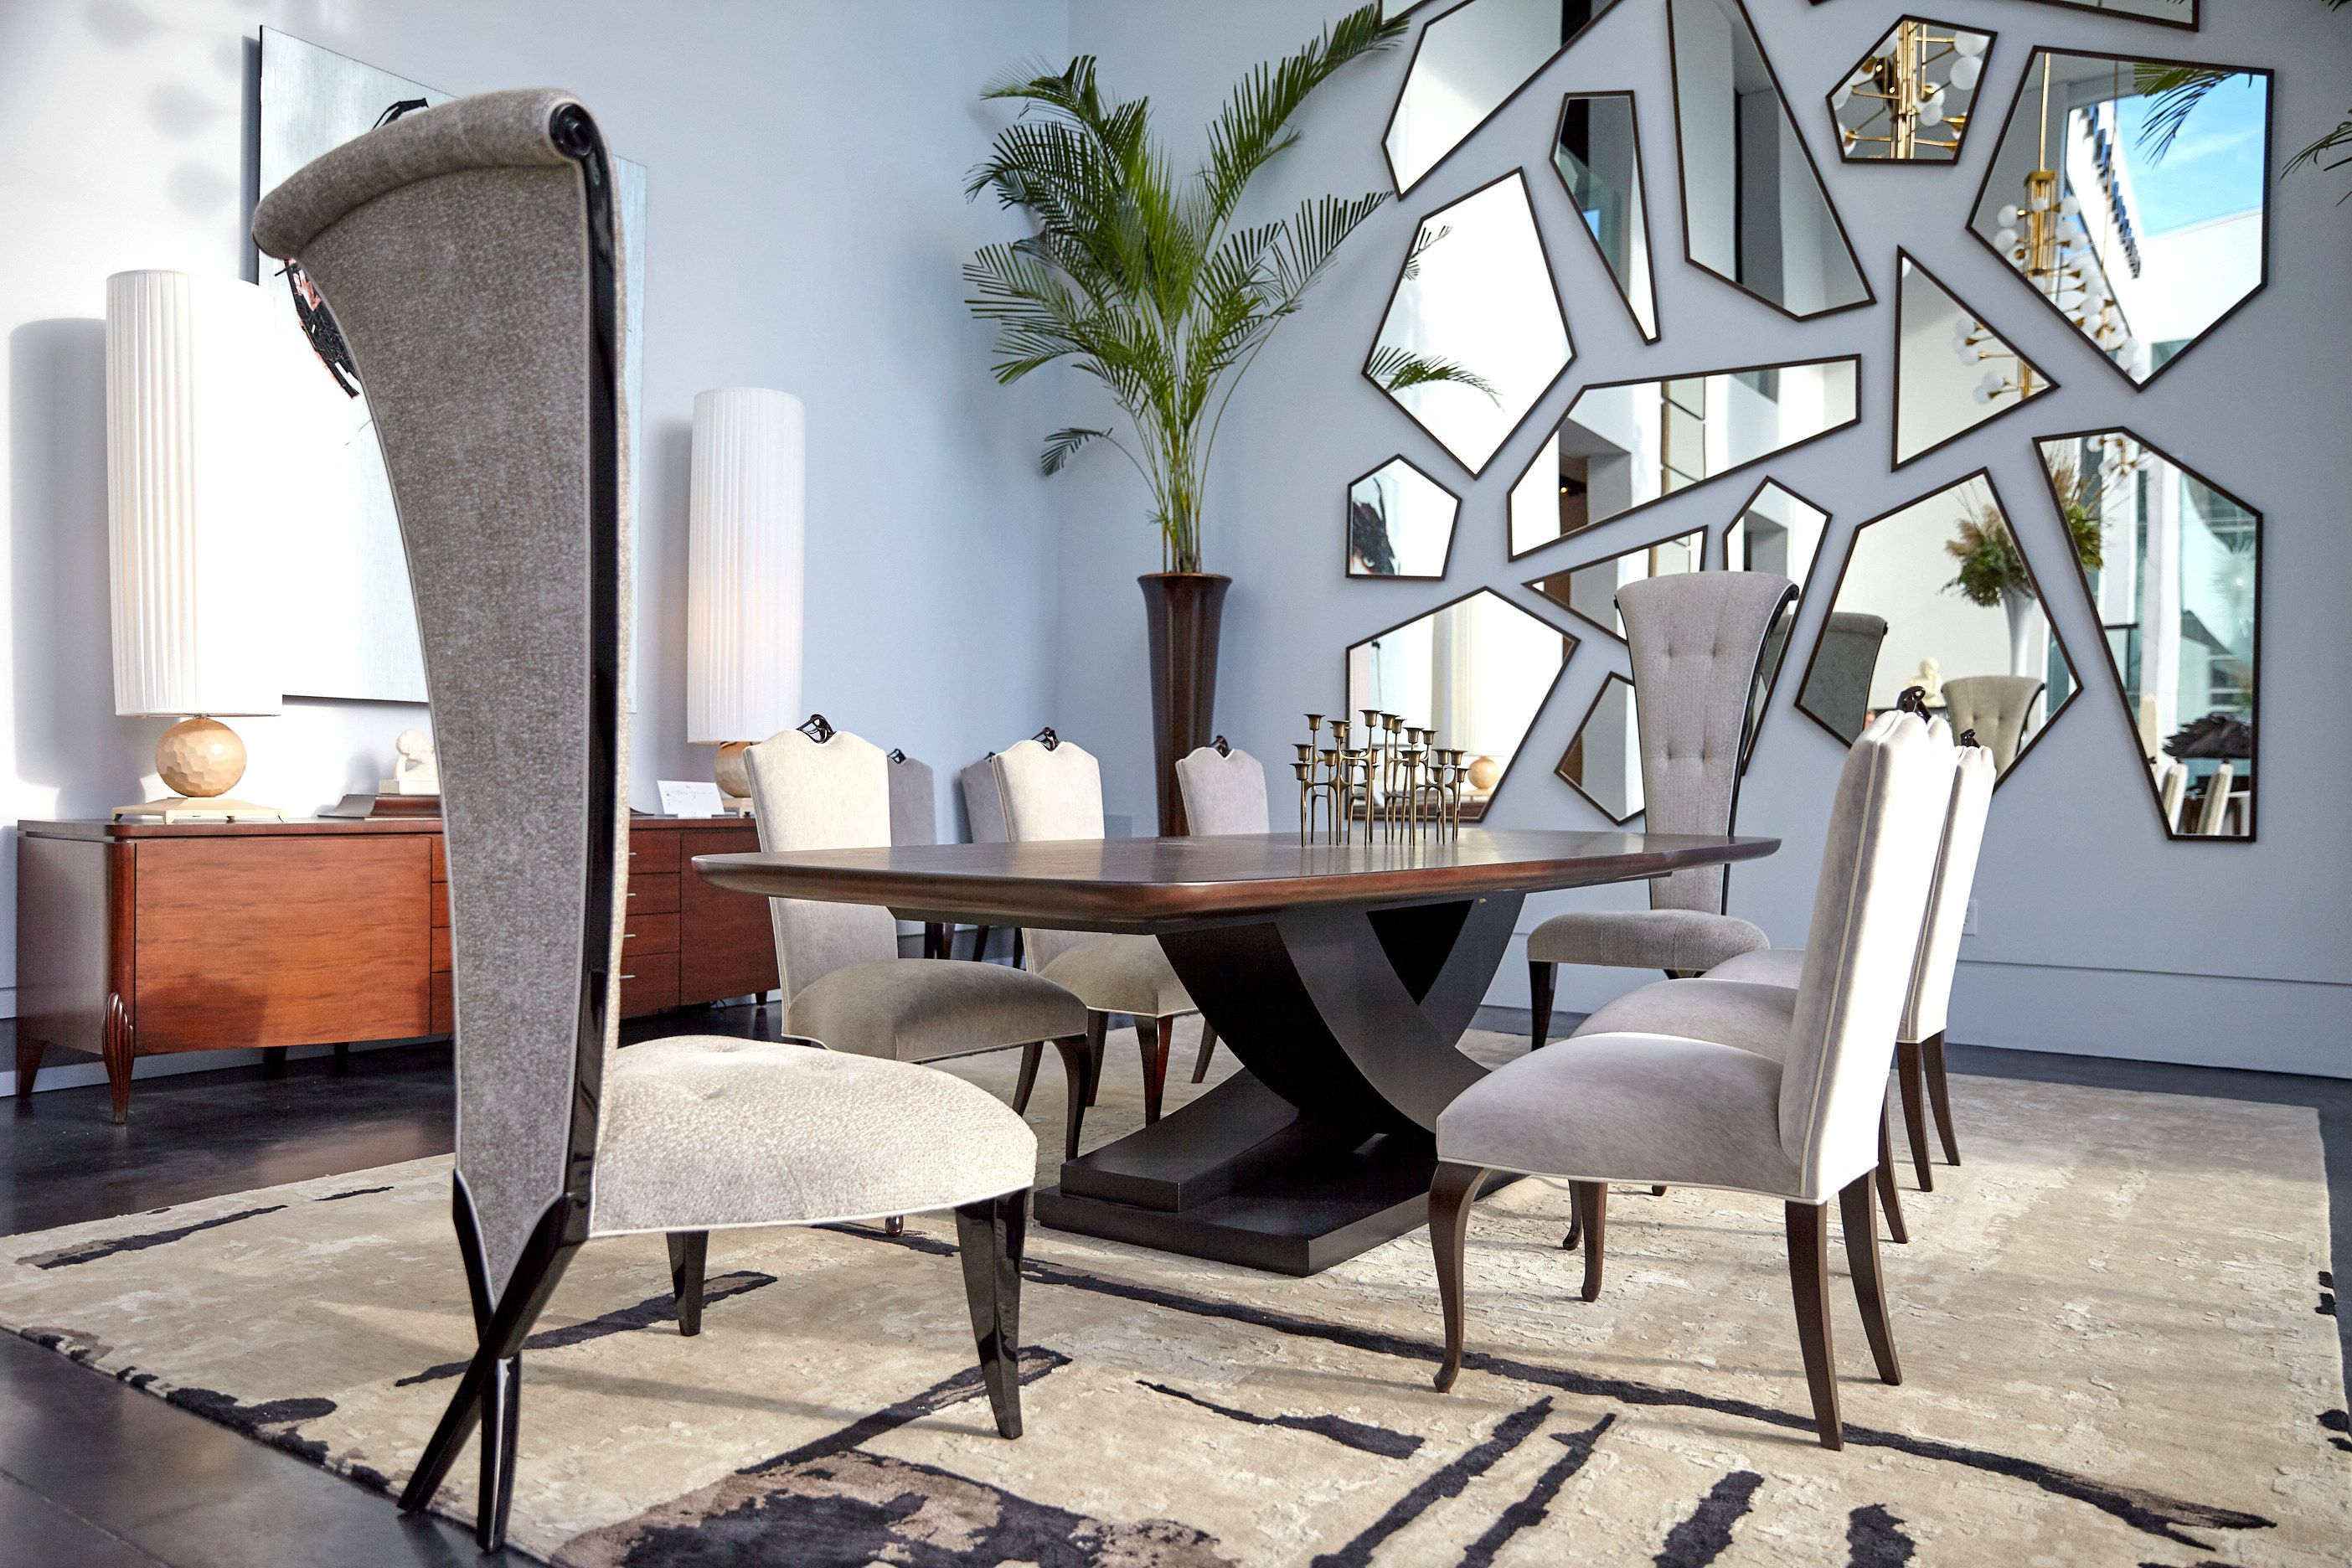 Impress Your Dinner Guests With Our #luxurious Dining